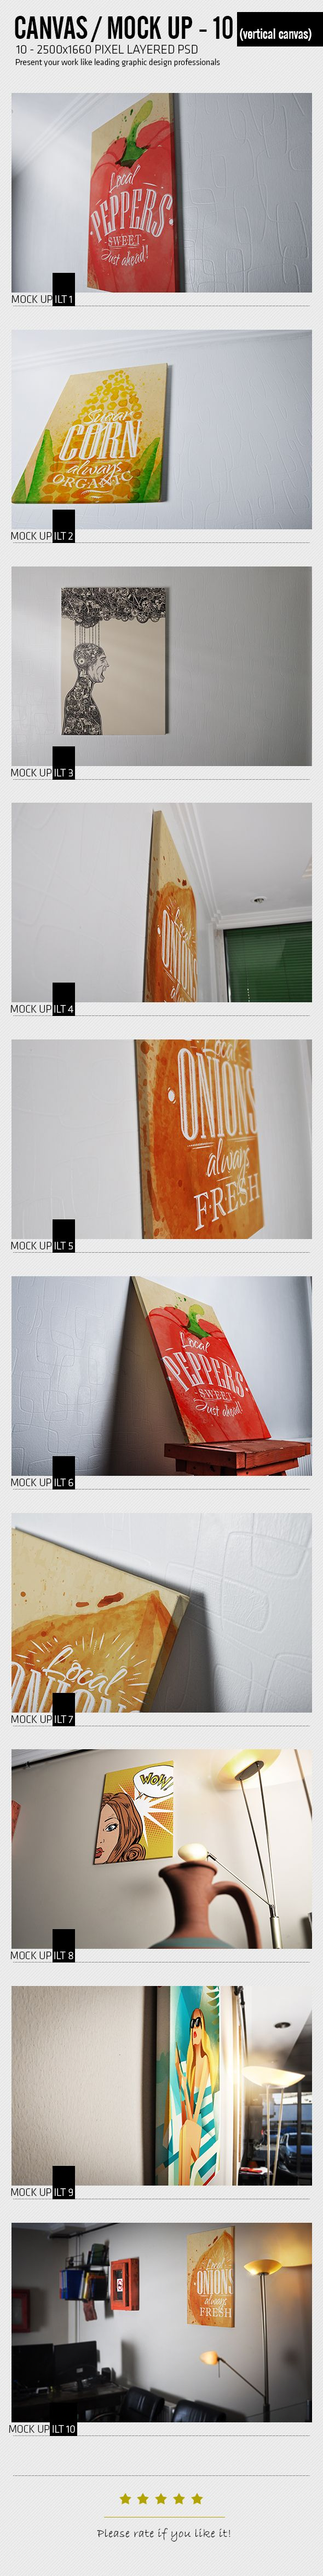 canvas mock up  vertical canvas  canvas, elegant, gallery, gallery wrap, mock up, mock-up, mock-up template, mockup, modern, photo, photo-realistic, present, presentation, realism, realistic, render, showcase, template, three-dimensional